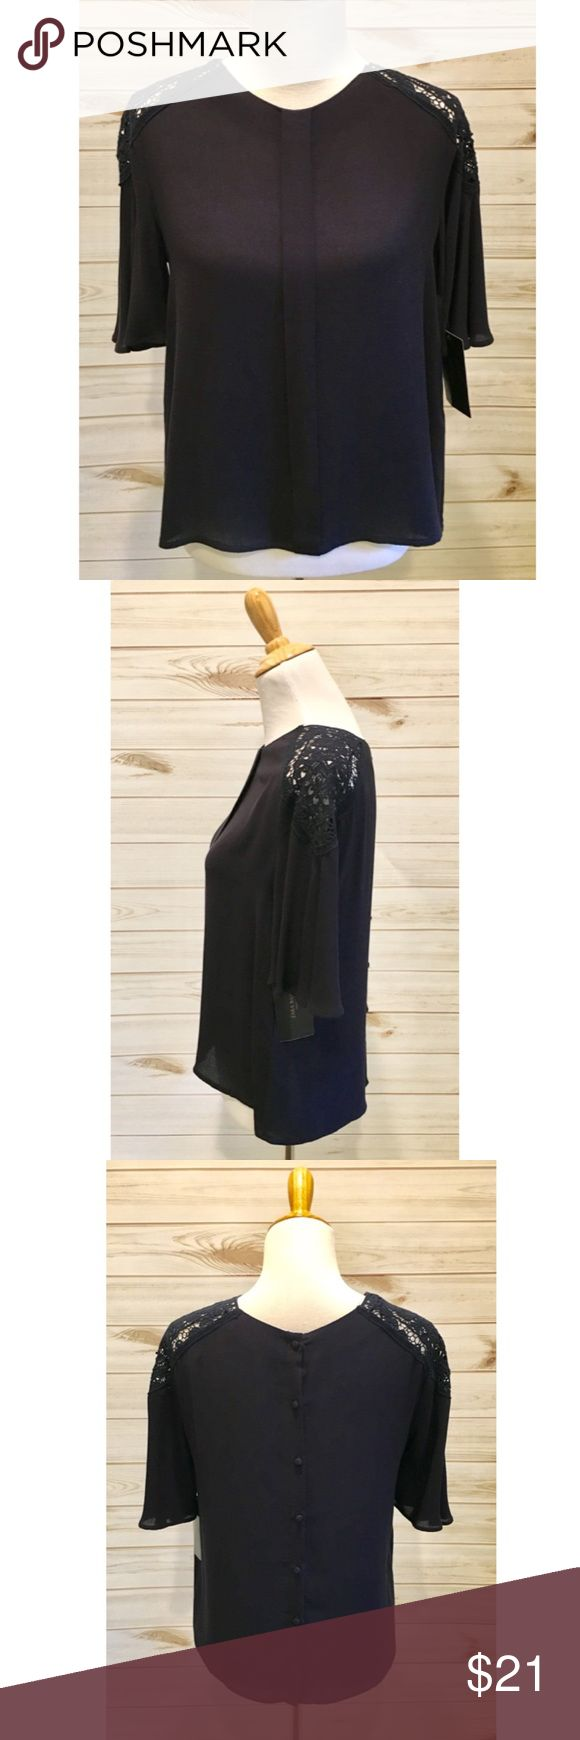 """NWT Zara Basics Navy Crochet Short Sleeve Top NWT Zara Basics short sleeved top. Size M. Beautiful navy blue color with crochet detailing on each shoulder. Buttons line the back of the shirt for an added touch.  Bust: 20"""" pit to pit laying flat  Length: 22.5"""" from shoulder Zara Tops"""